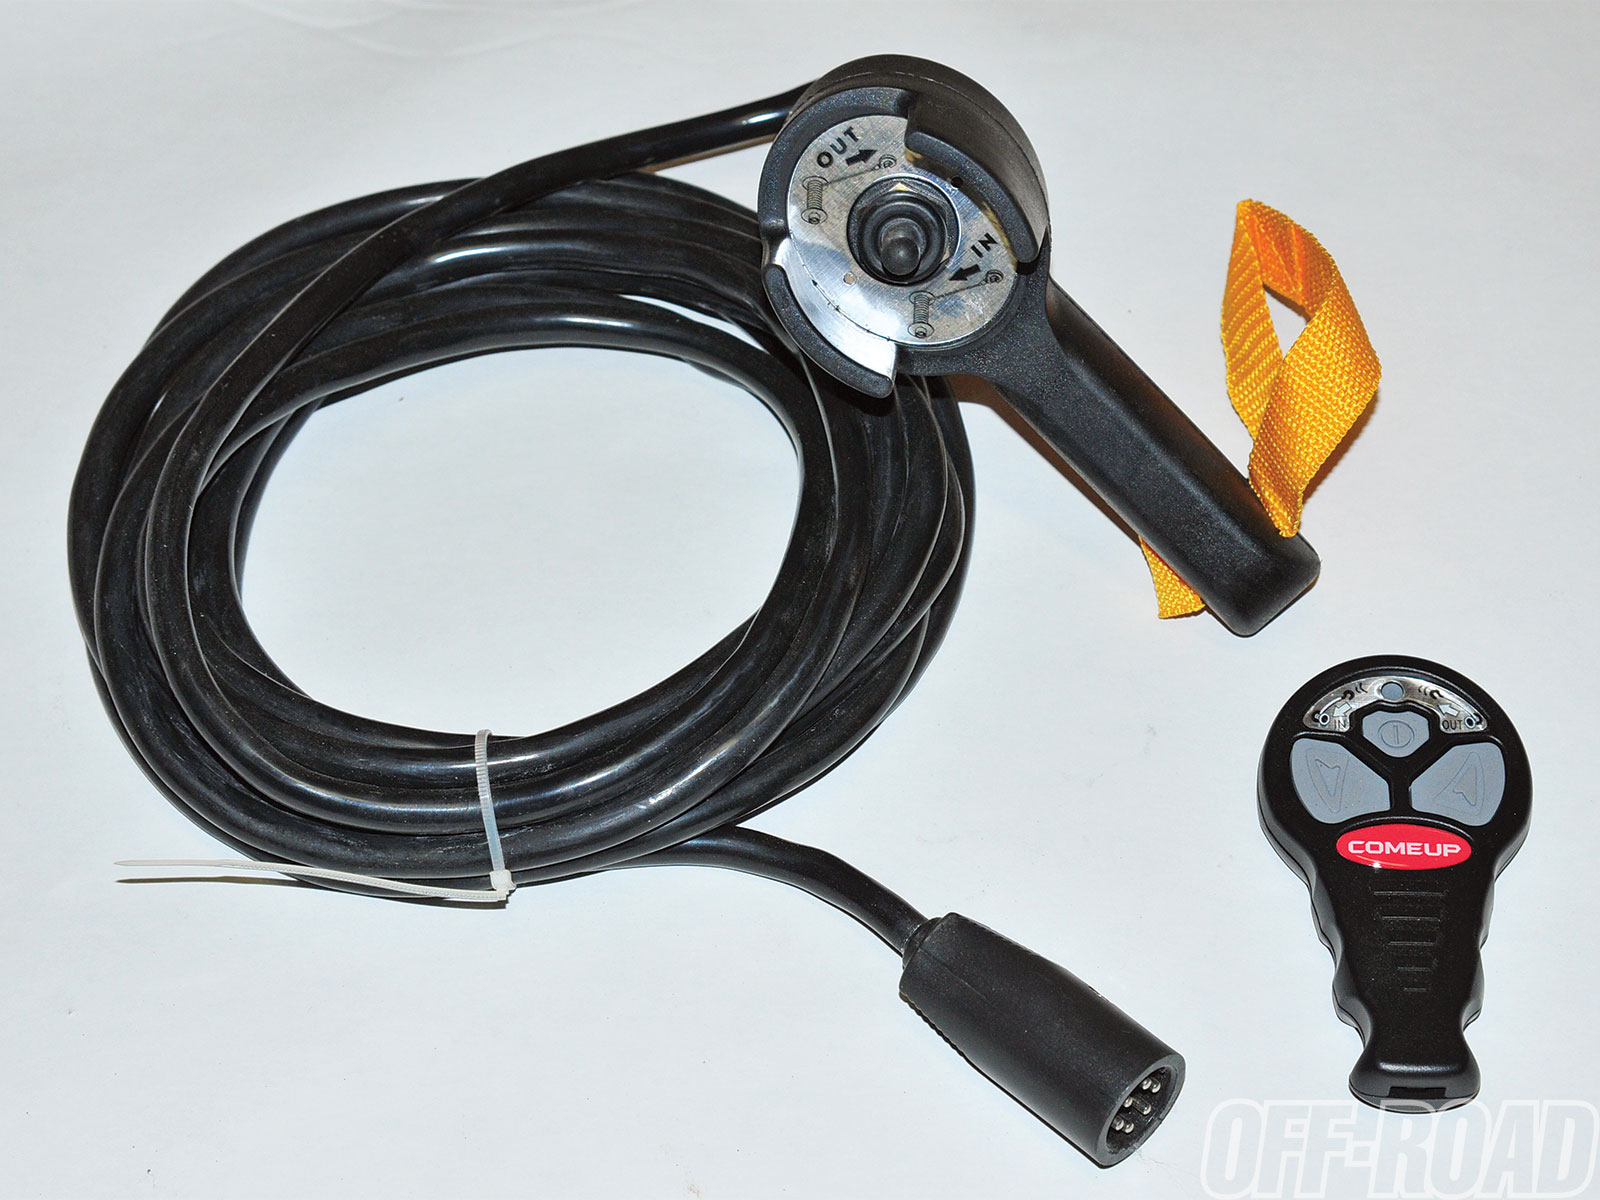 1306 04+ultimate portability using the seal 9.5rsi+thermometric indicator led